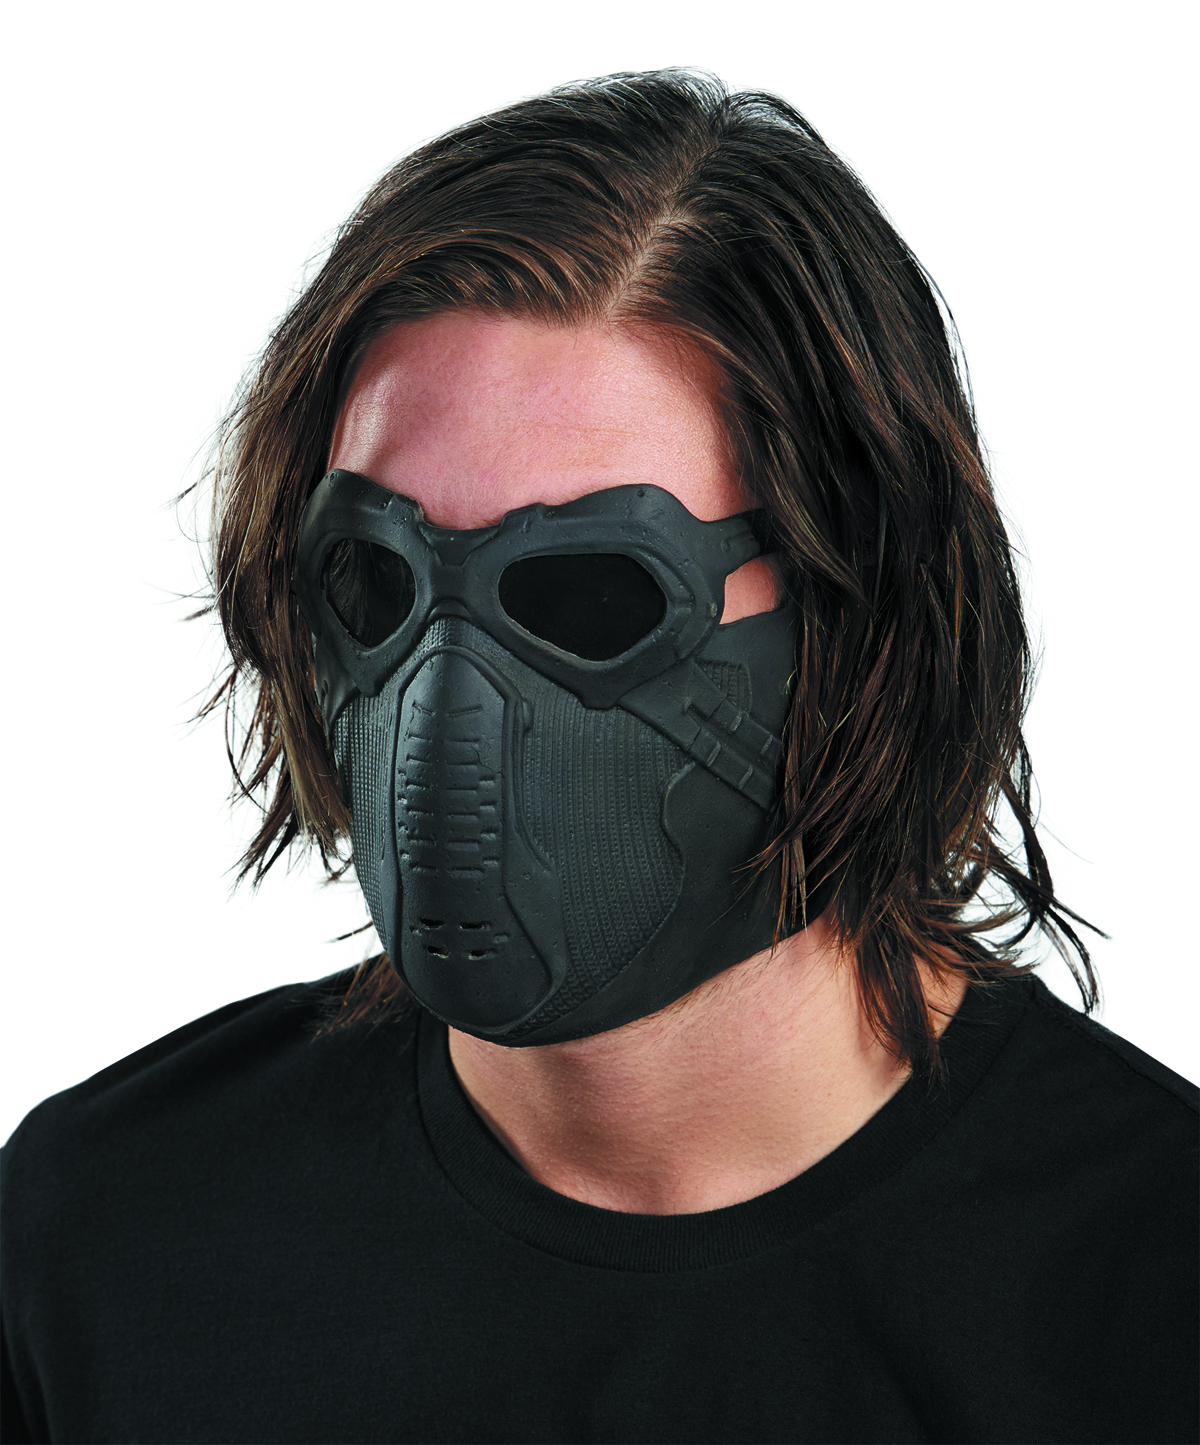 CAPT AMERICA 2 WINTER SOLDIER LATEX DLX MASK